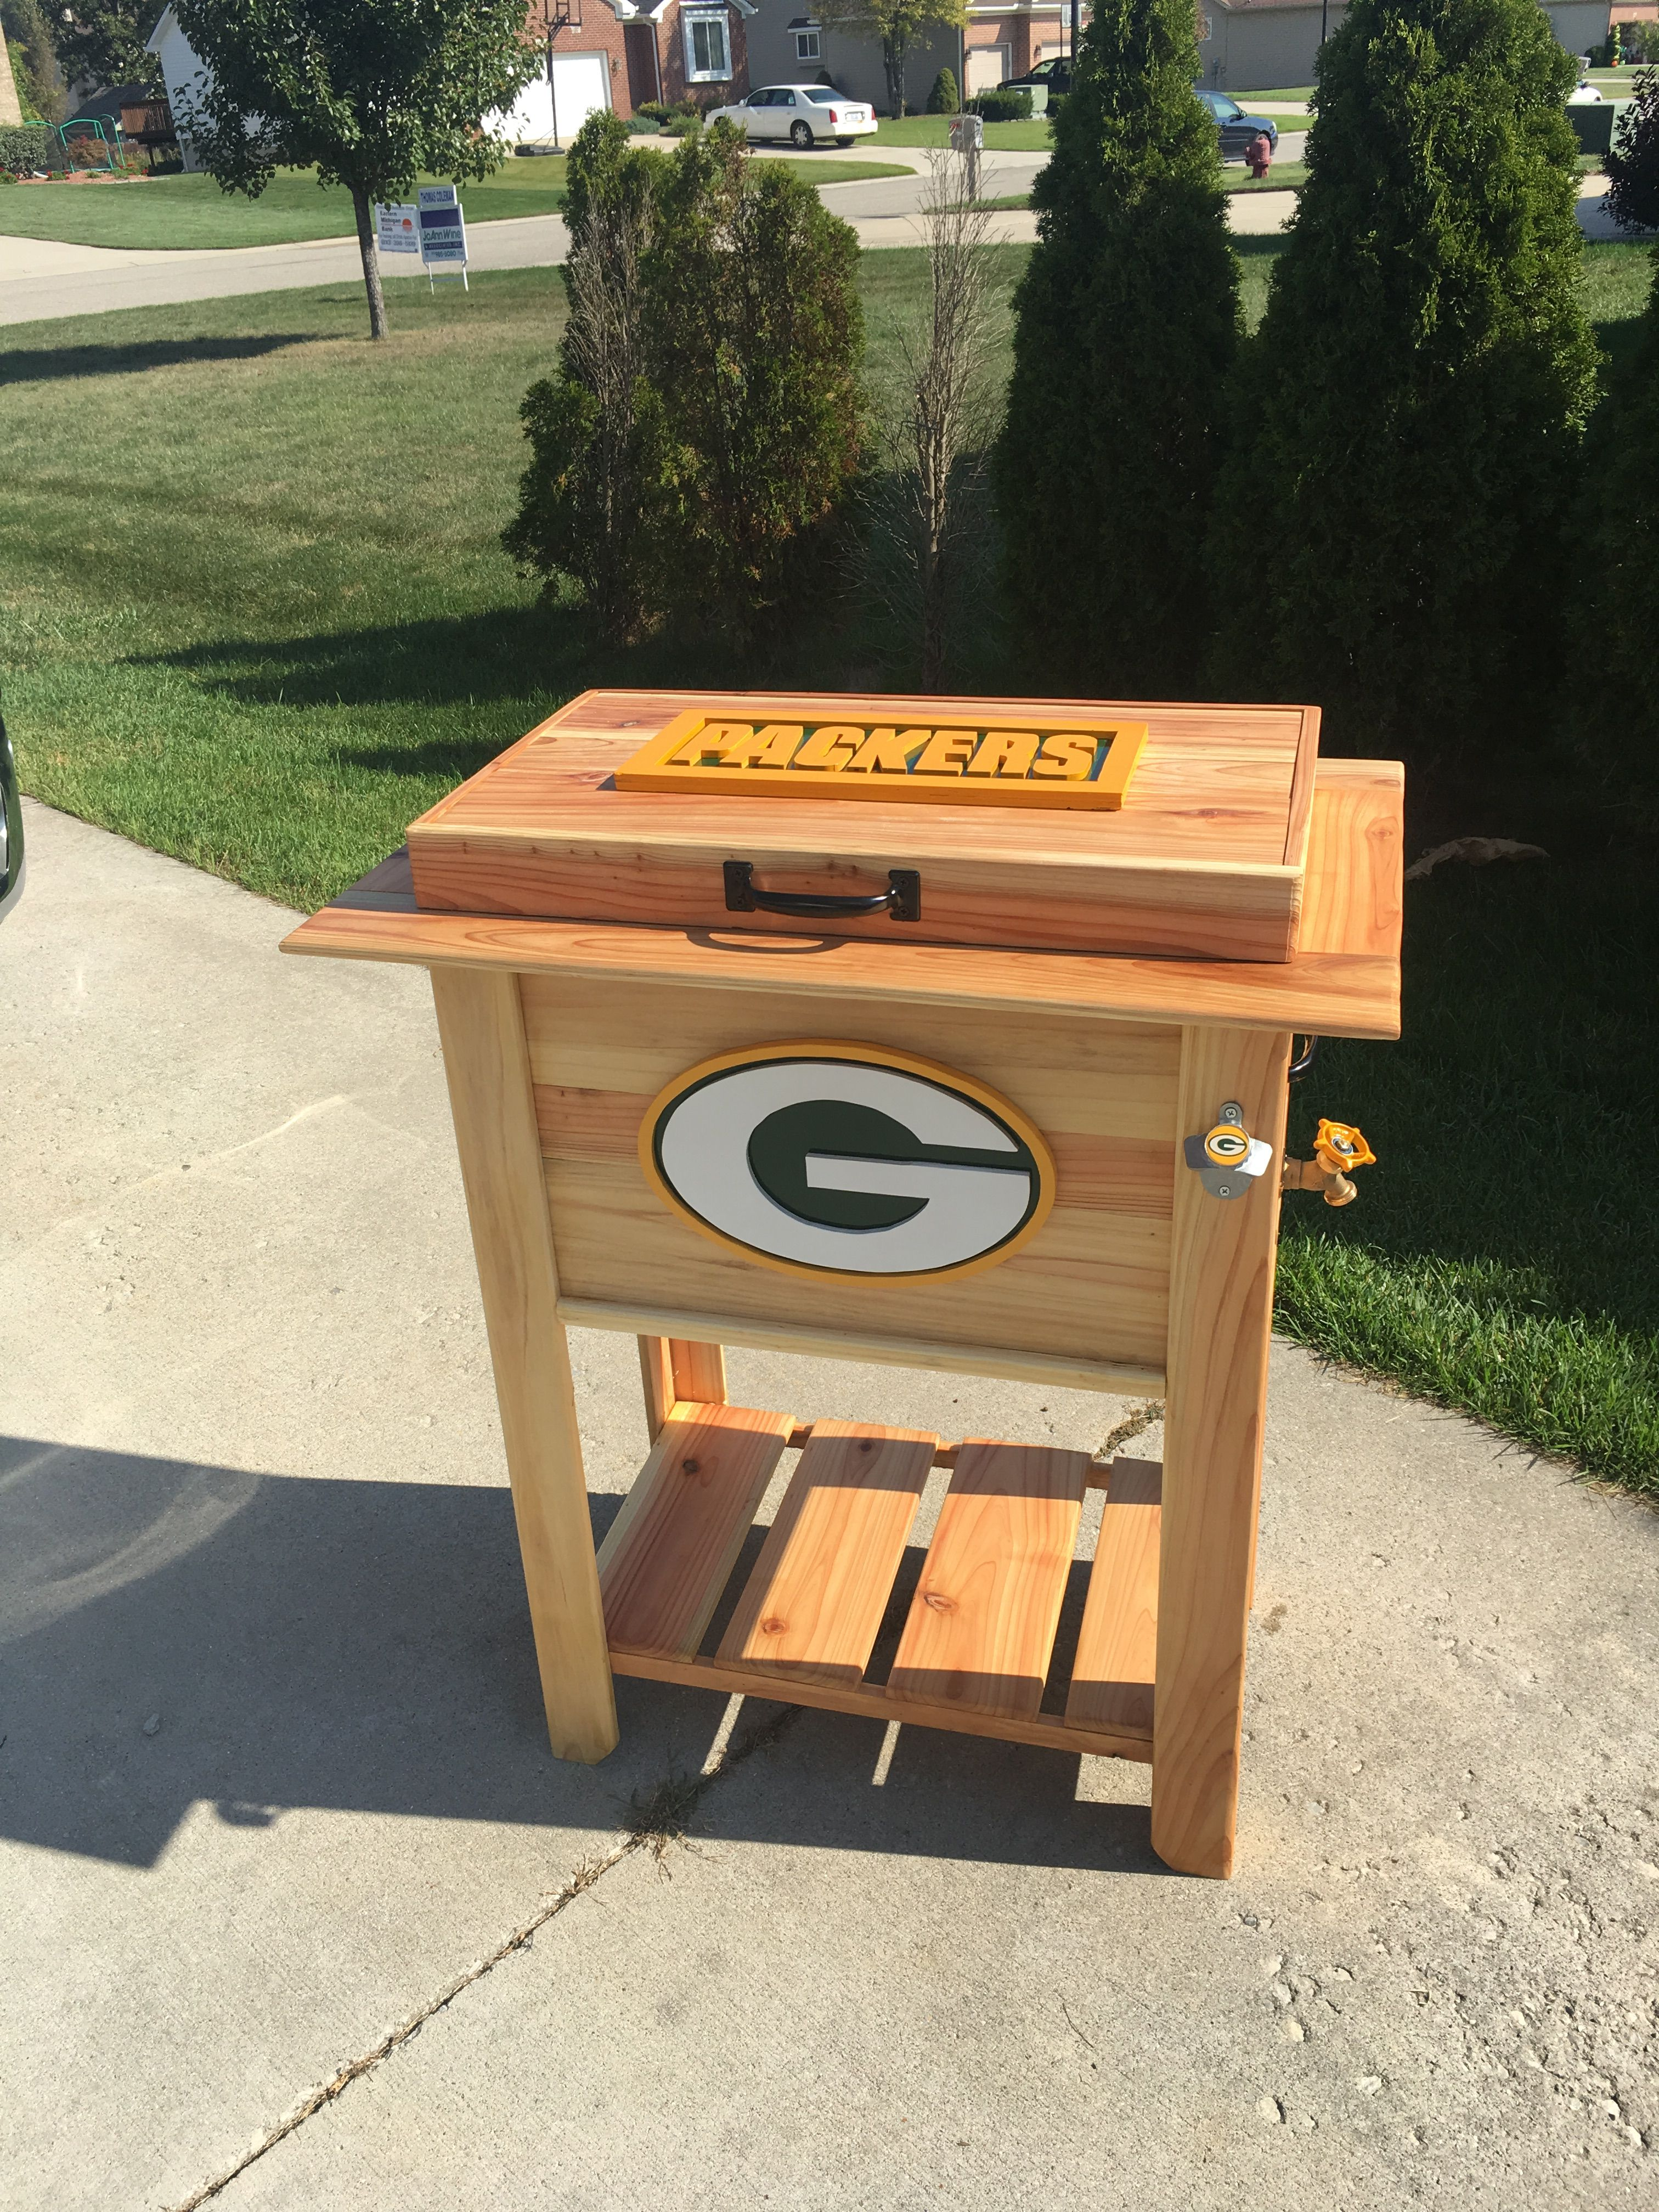 Green Bay Packers Patio Deck Cooler Or Ice Chest Made From Cedar Fence Pickets Includes A 48 Qt Colema Deck Cooler Green Bay Packers Logo Cedar Fence Pickets